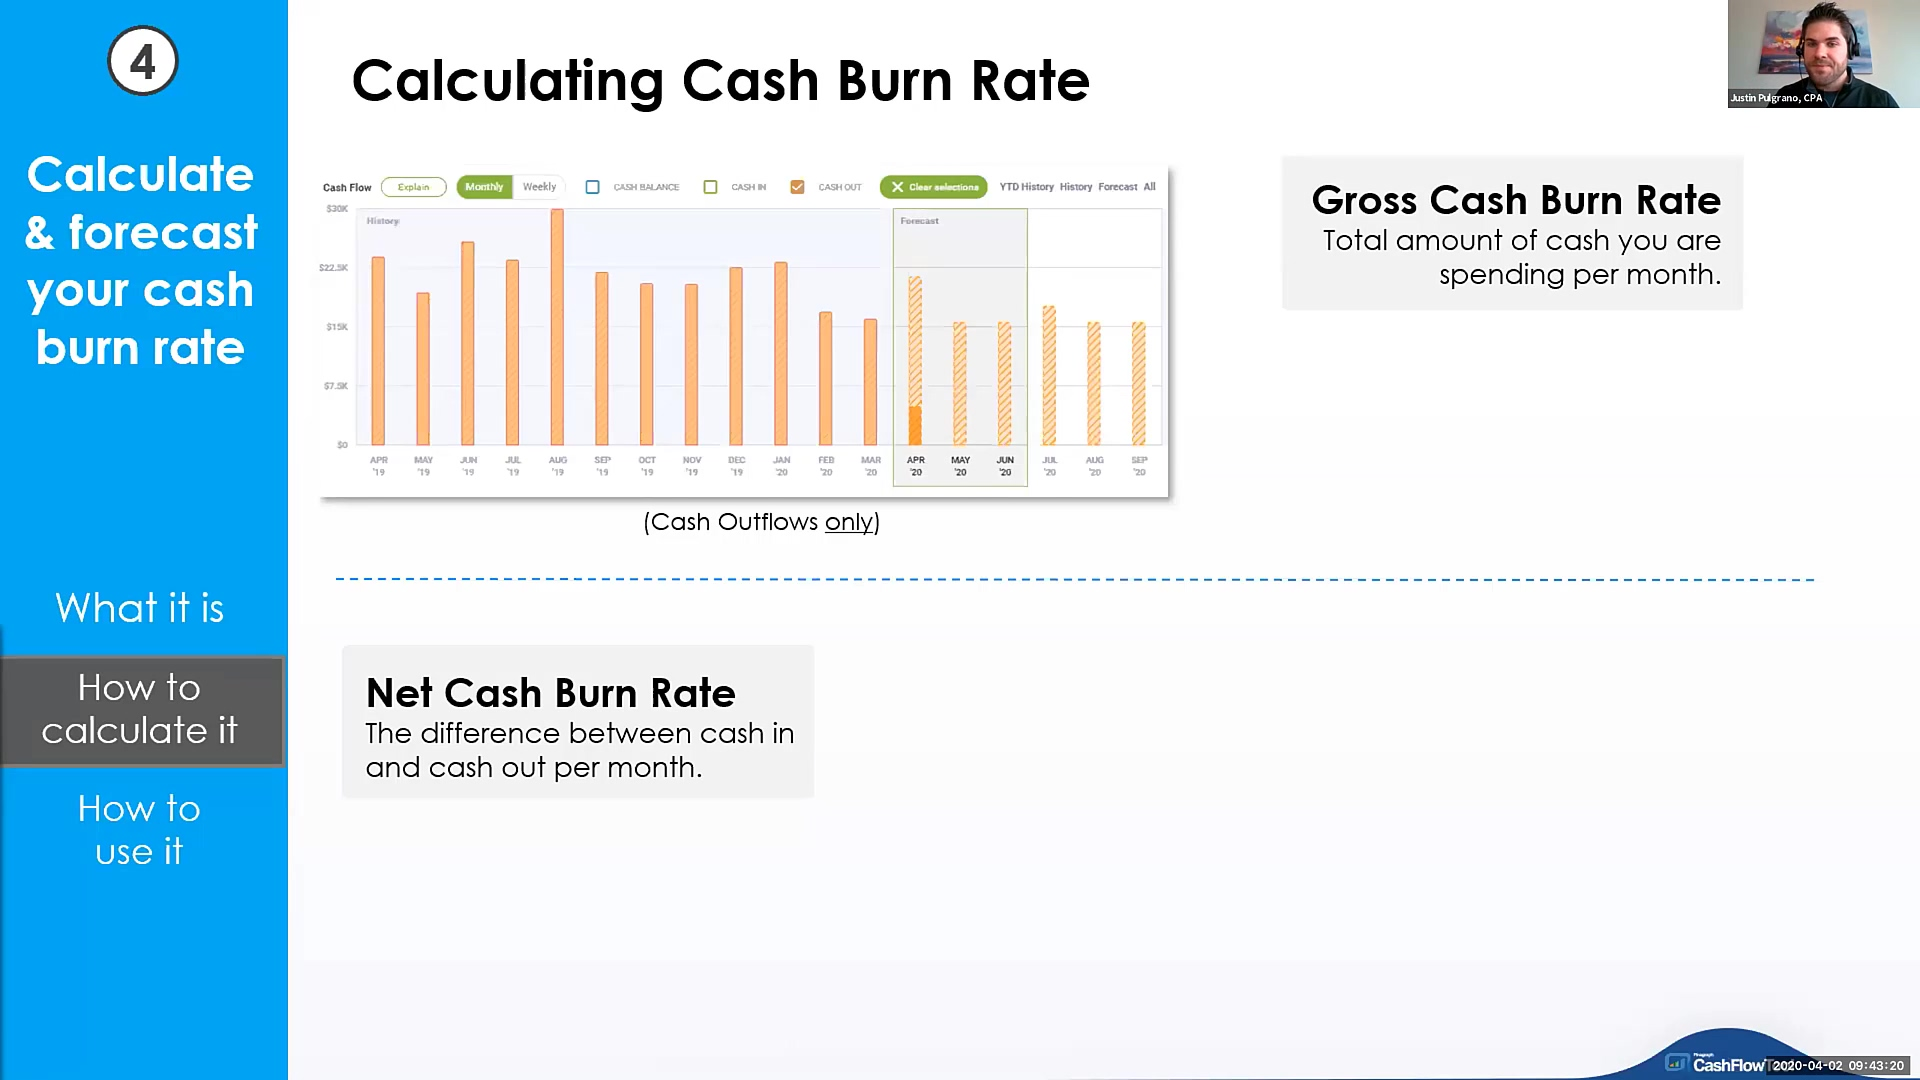 Calculate and forecast your cash burn rate